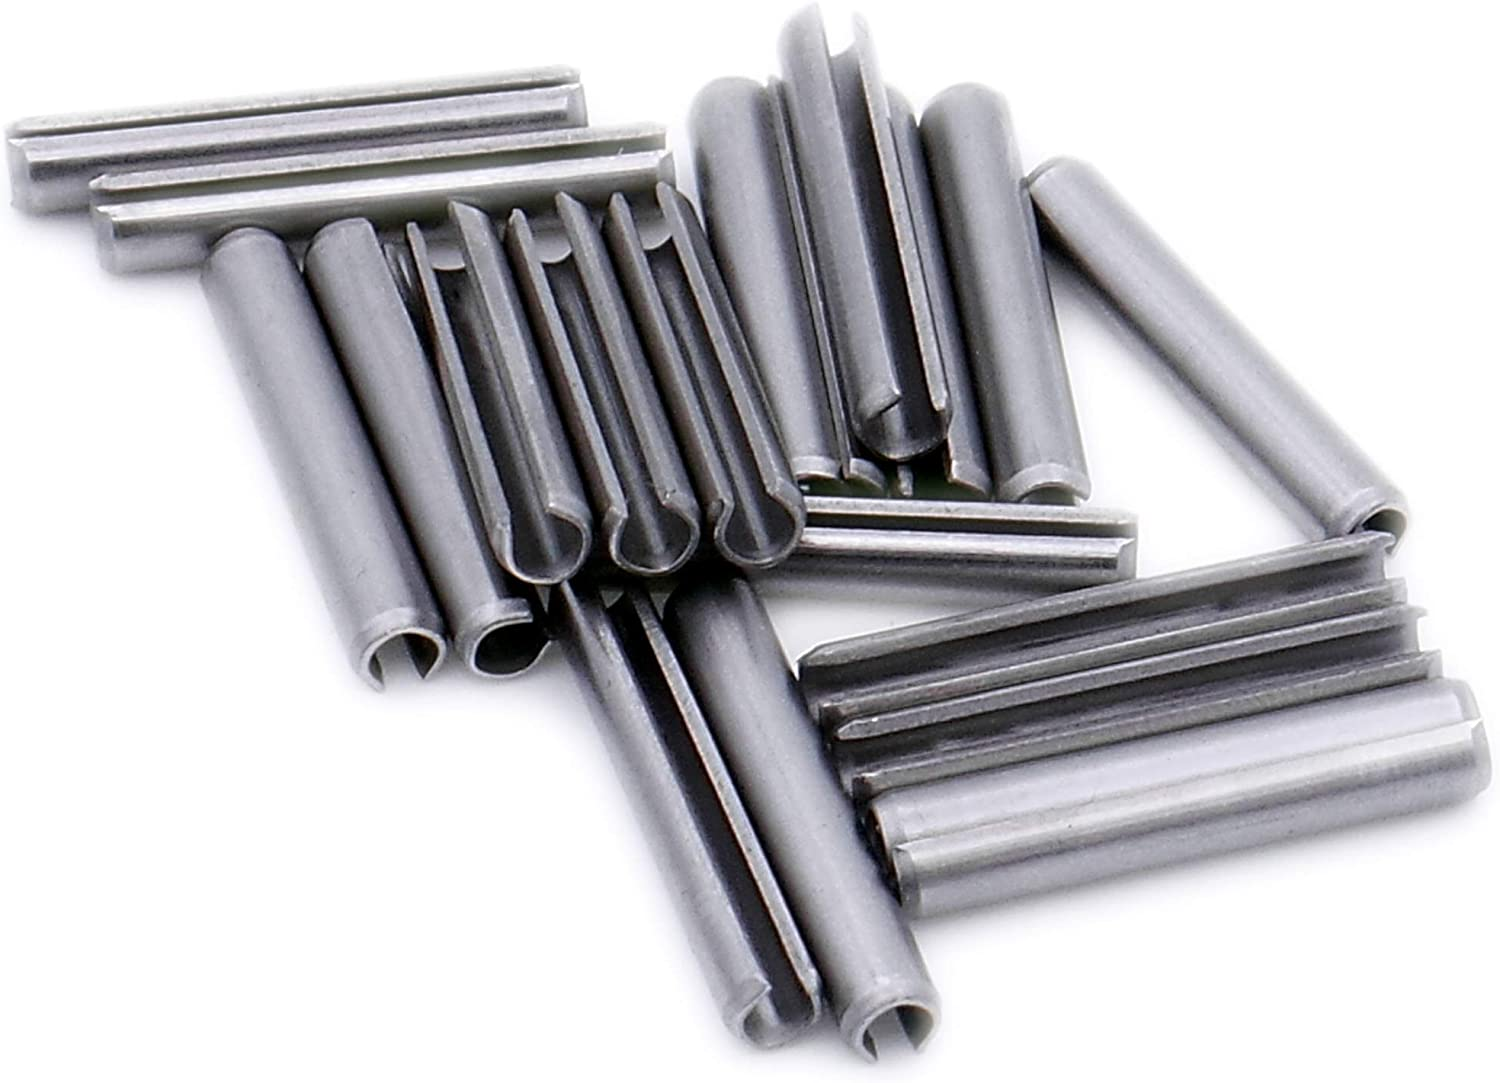 A1 Heavy Pack of 20 D5 5mm x 32mm - Stainless Steel Slotted Spring Pin